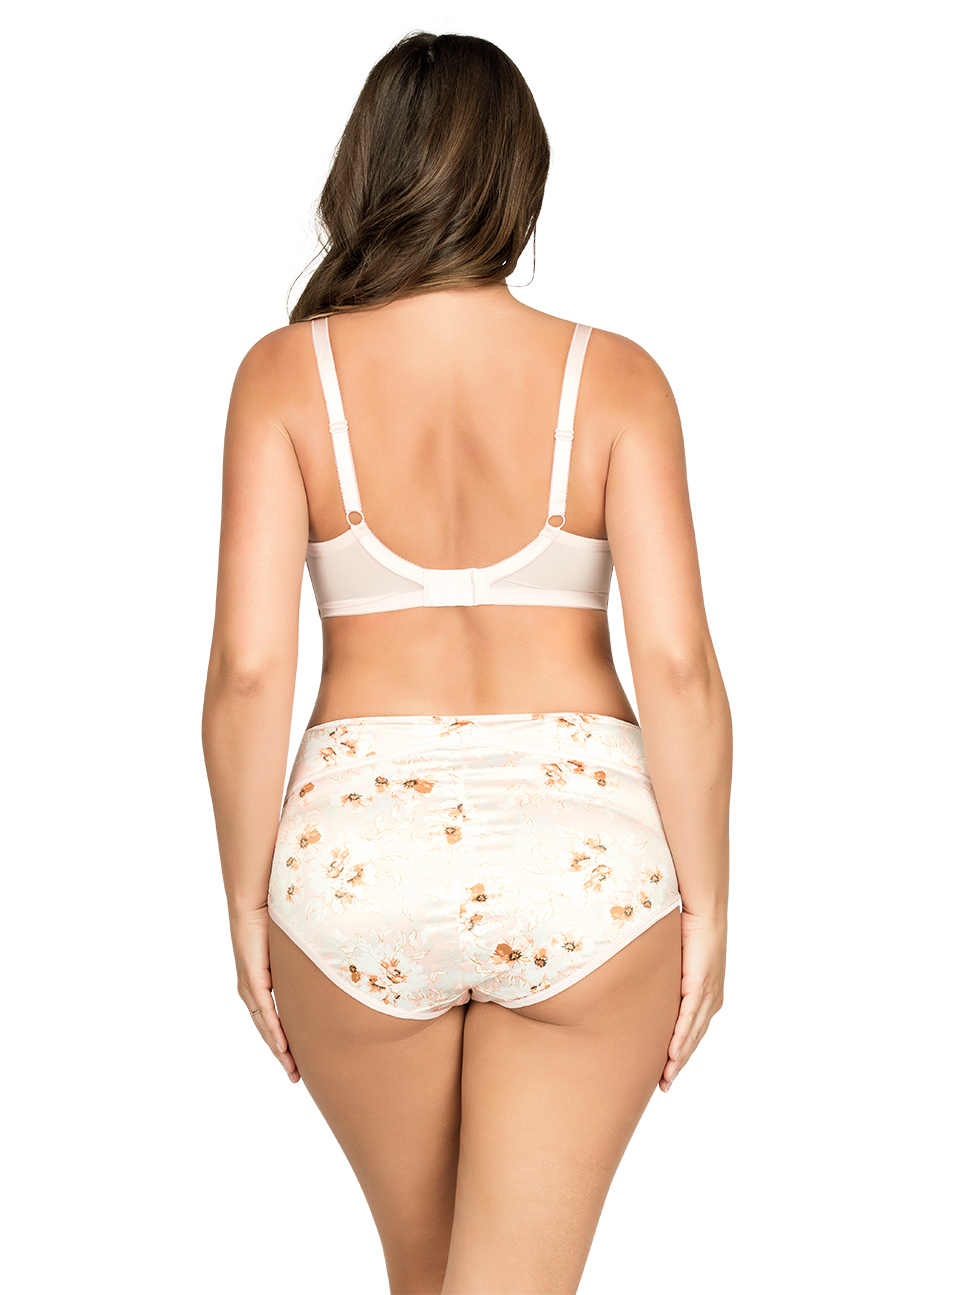 PARFAIT Charlotte PaddedBra6901 HighwaistBrief6917 BlossomPrint Back - Charlotte Highwaist Brief - Blossom Print - 6917